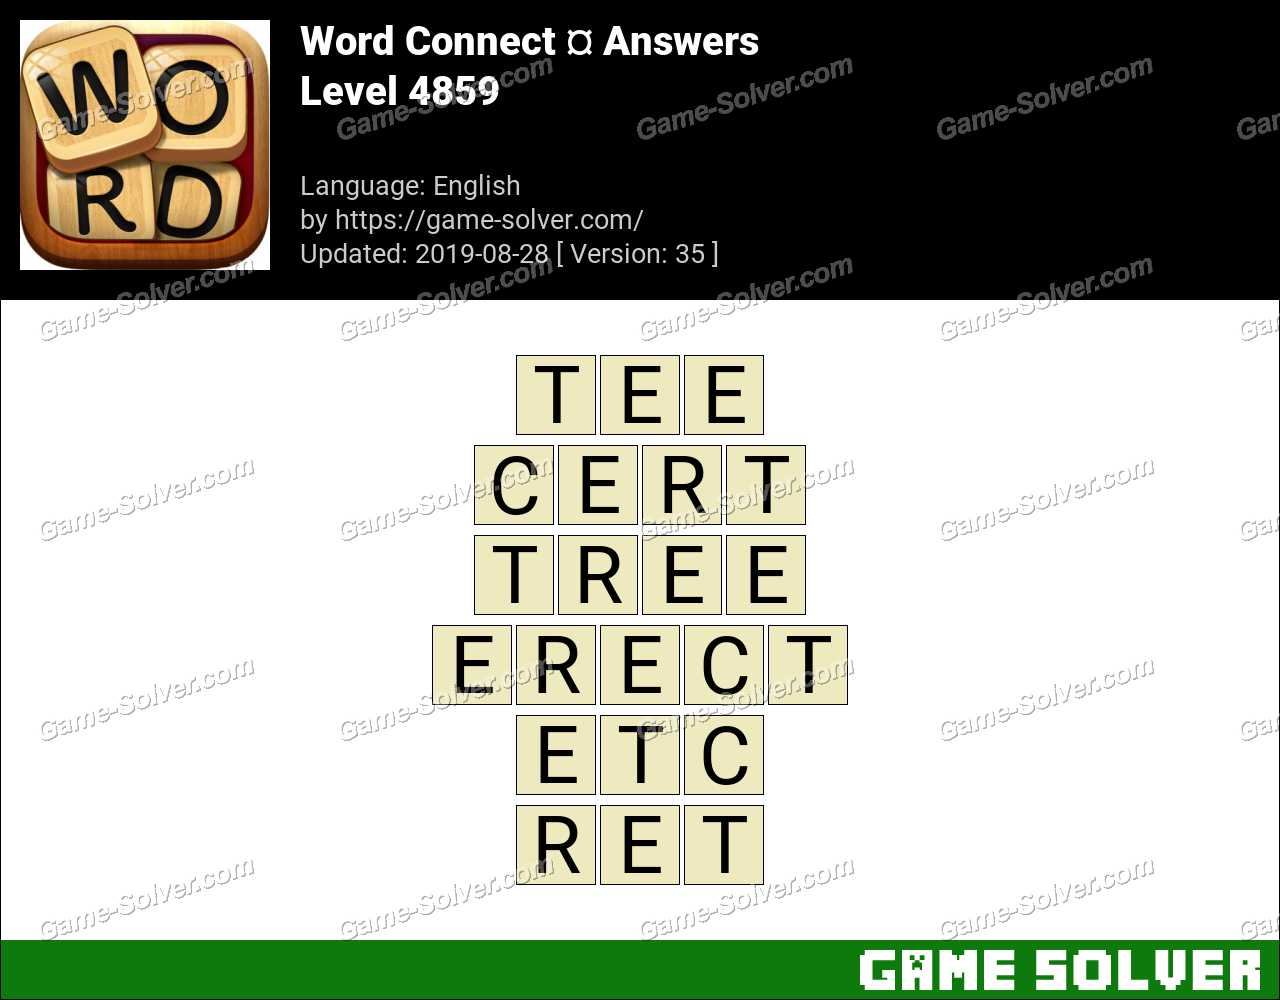 Word Connect Level 4859 Answers